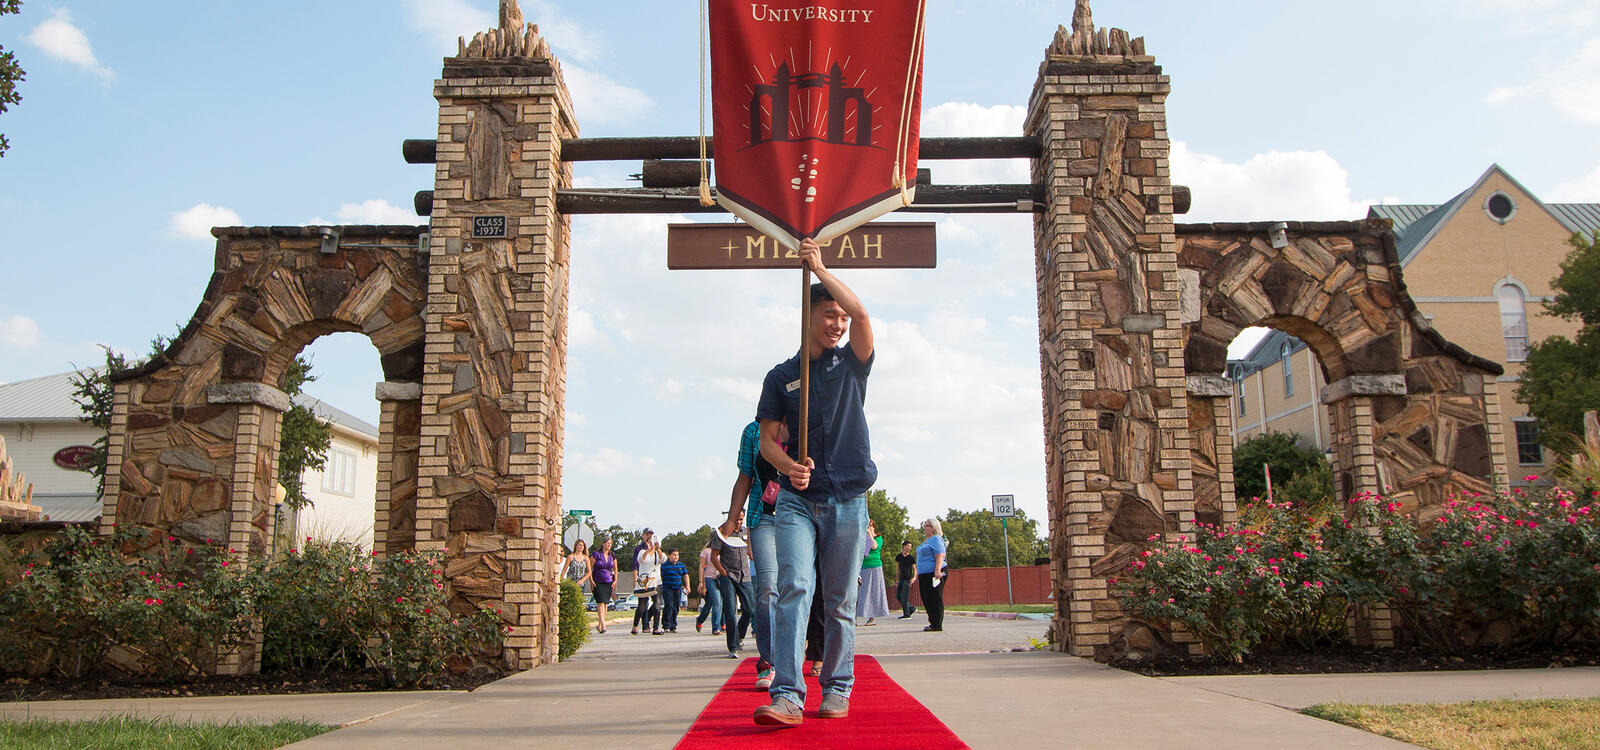 Student in front holds a SWAU banner as he leads incoming freshman down a red carpet through the Mizpah gate